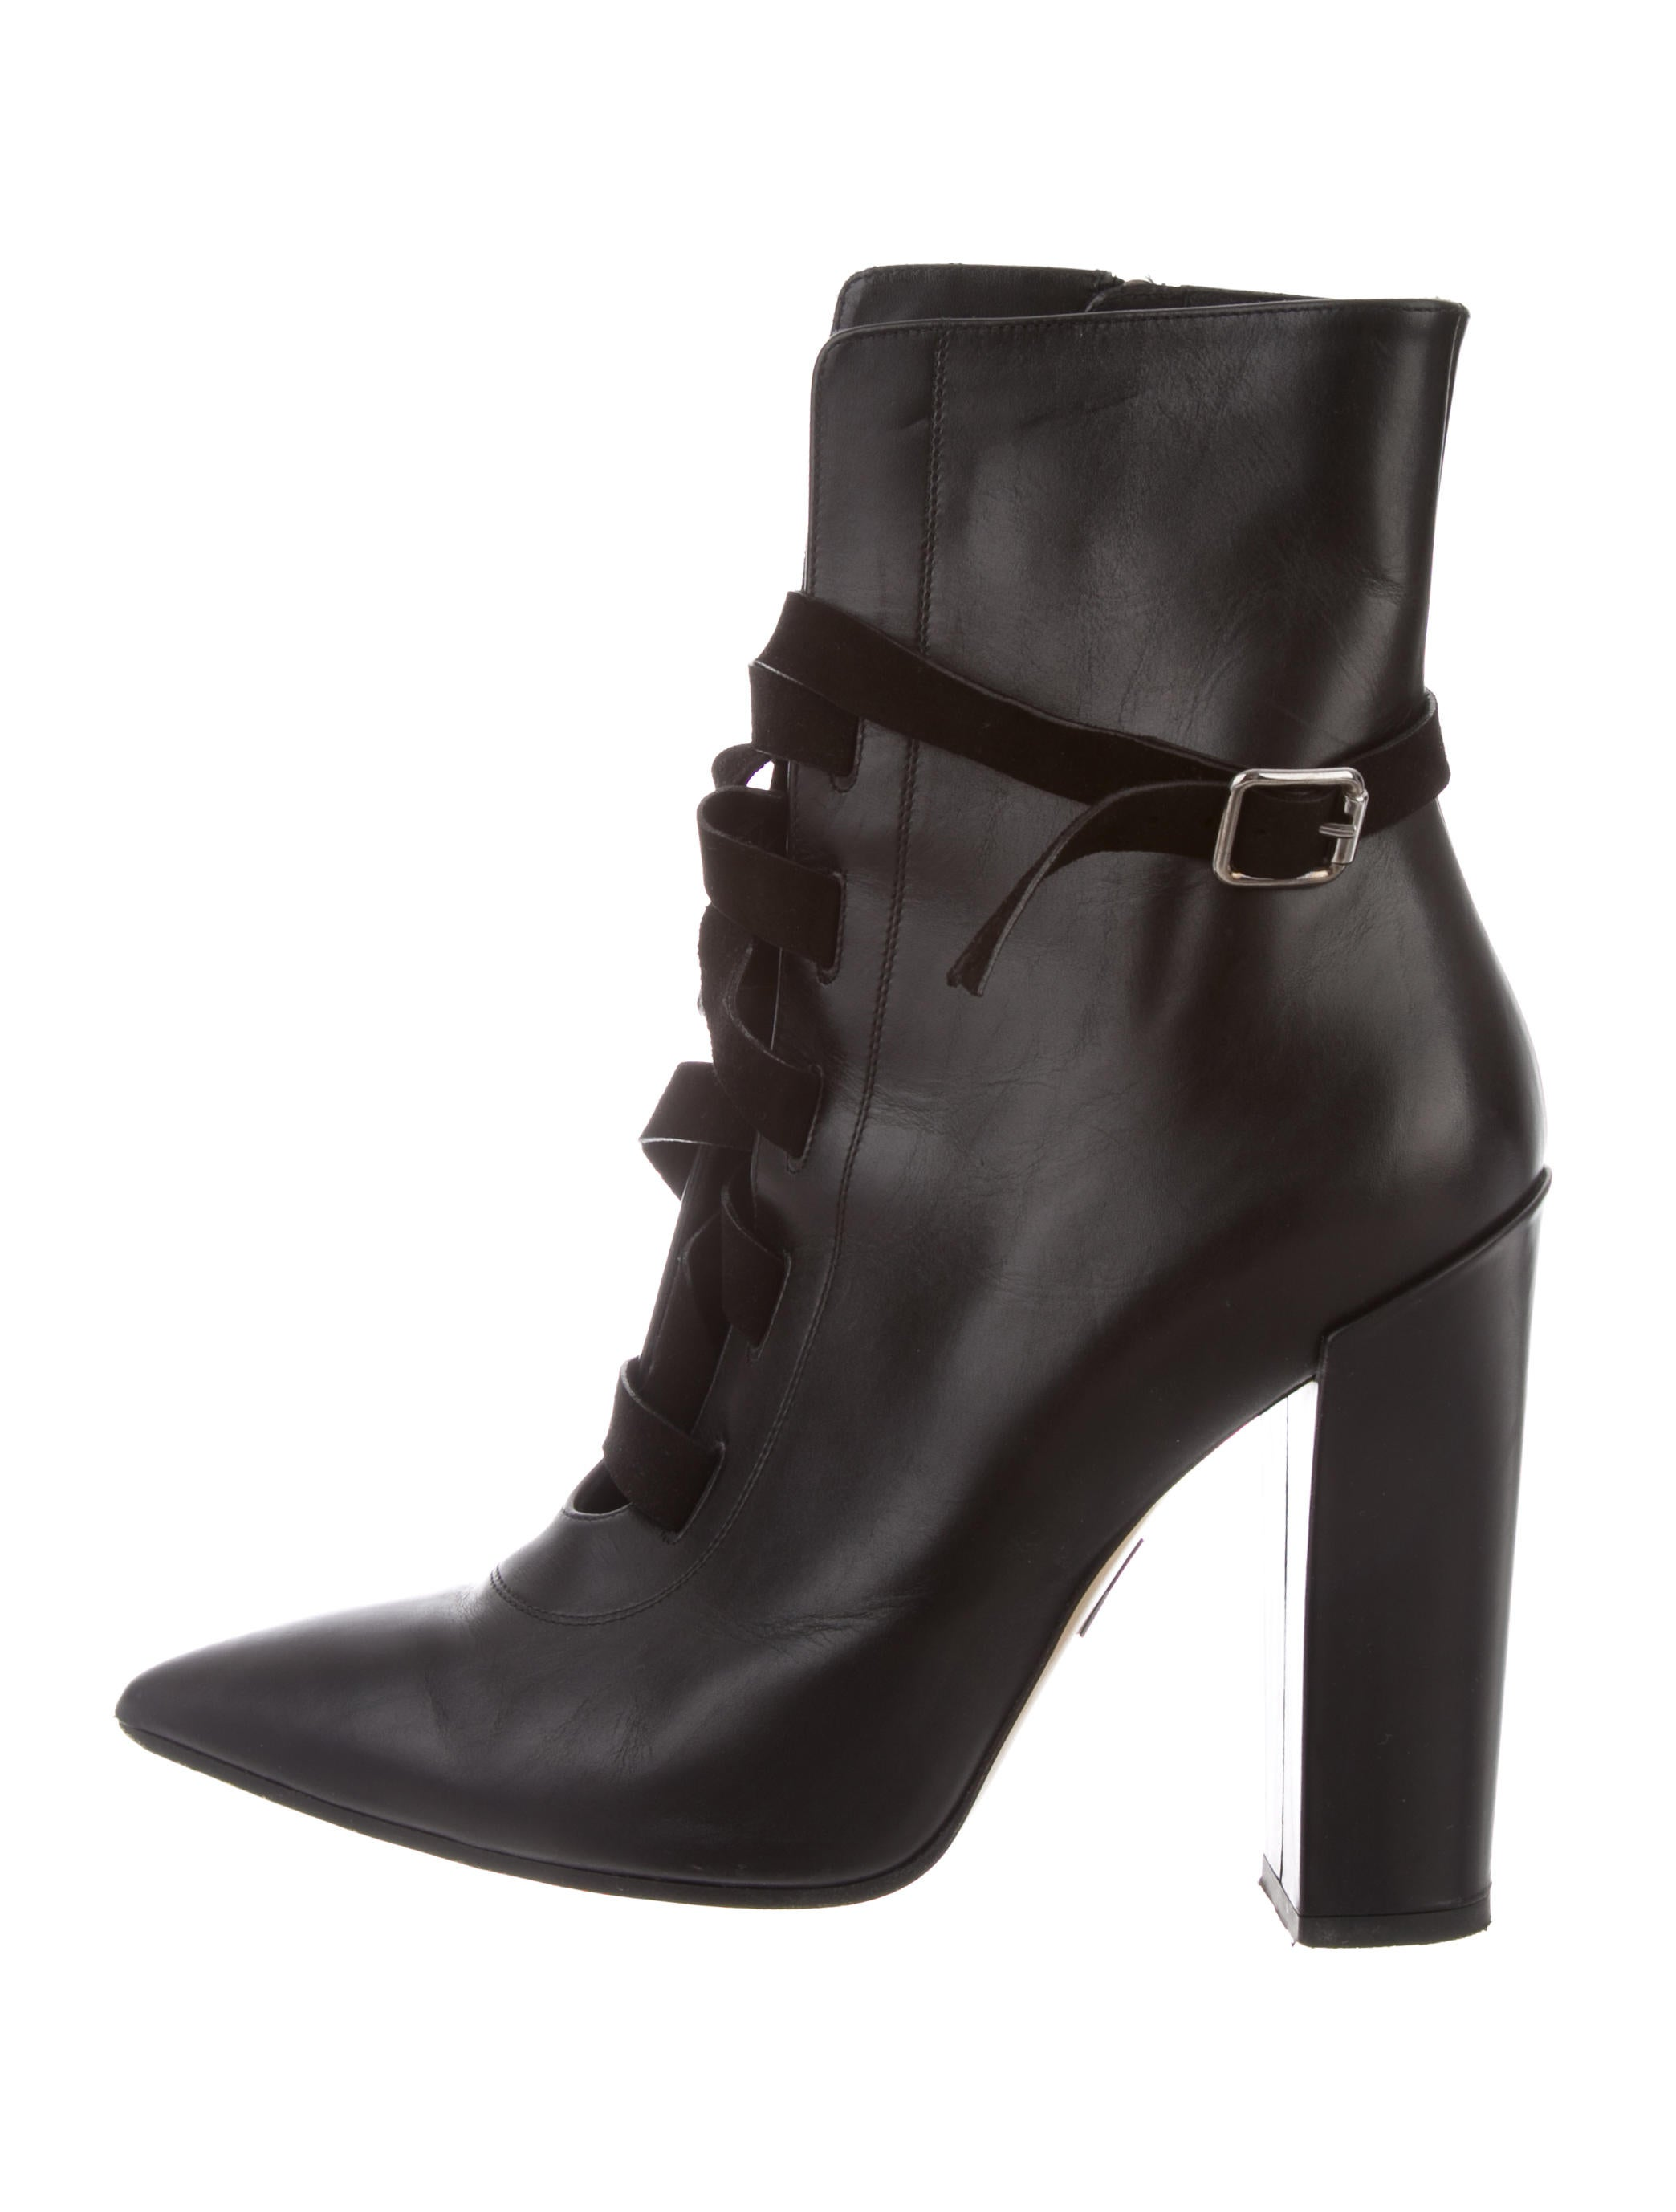 Adeam Lace-Up Ankle Boots - Shoes